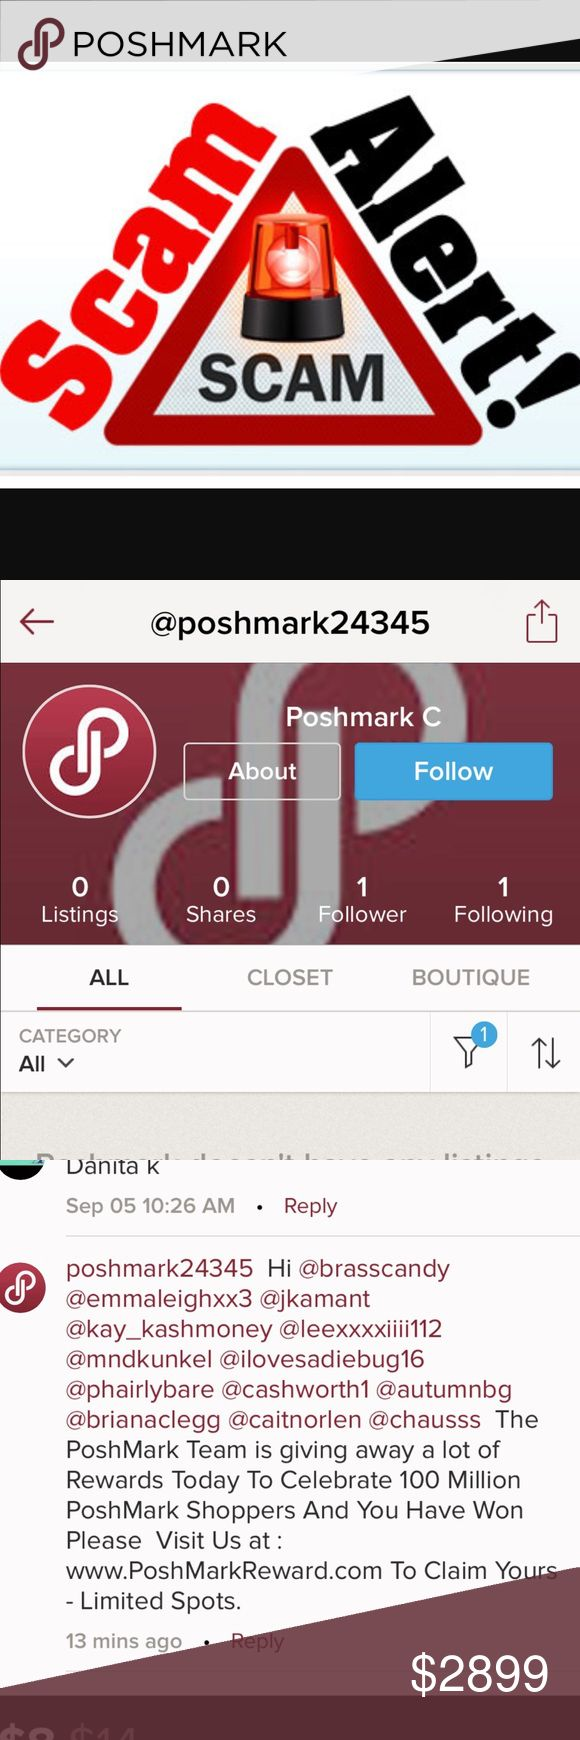 "🚨SHARE THIS POST!!!🚨 🚨🚔 Please share this, tag your Poshmark bff's!! Report the accounts that are asking for your information outside of the poshmark platform! Use the arrow in the upper right hand corner to report all Scammers! These account have no followers, no information, no real name, no account history, and they're asking you for your info for ""FREE"" stuff. The ""happy customer"" testimonials aren't even listed accounts on PM! Be aware!!! Share. Share. Share! 🚔🚨 Shoes"